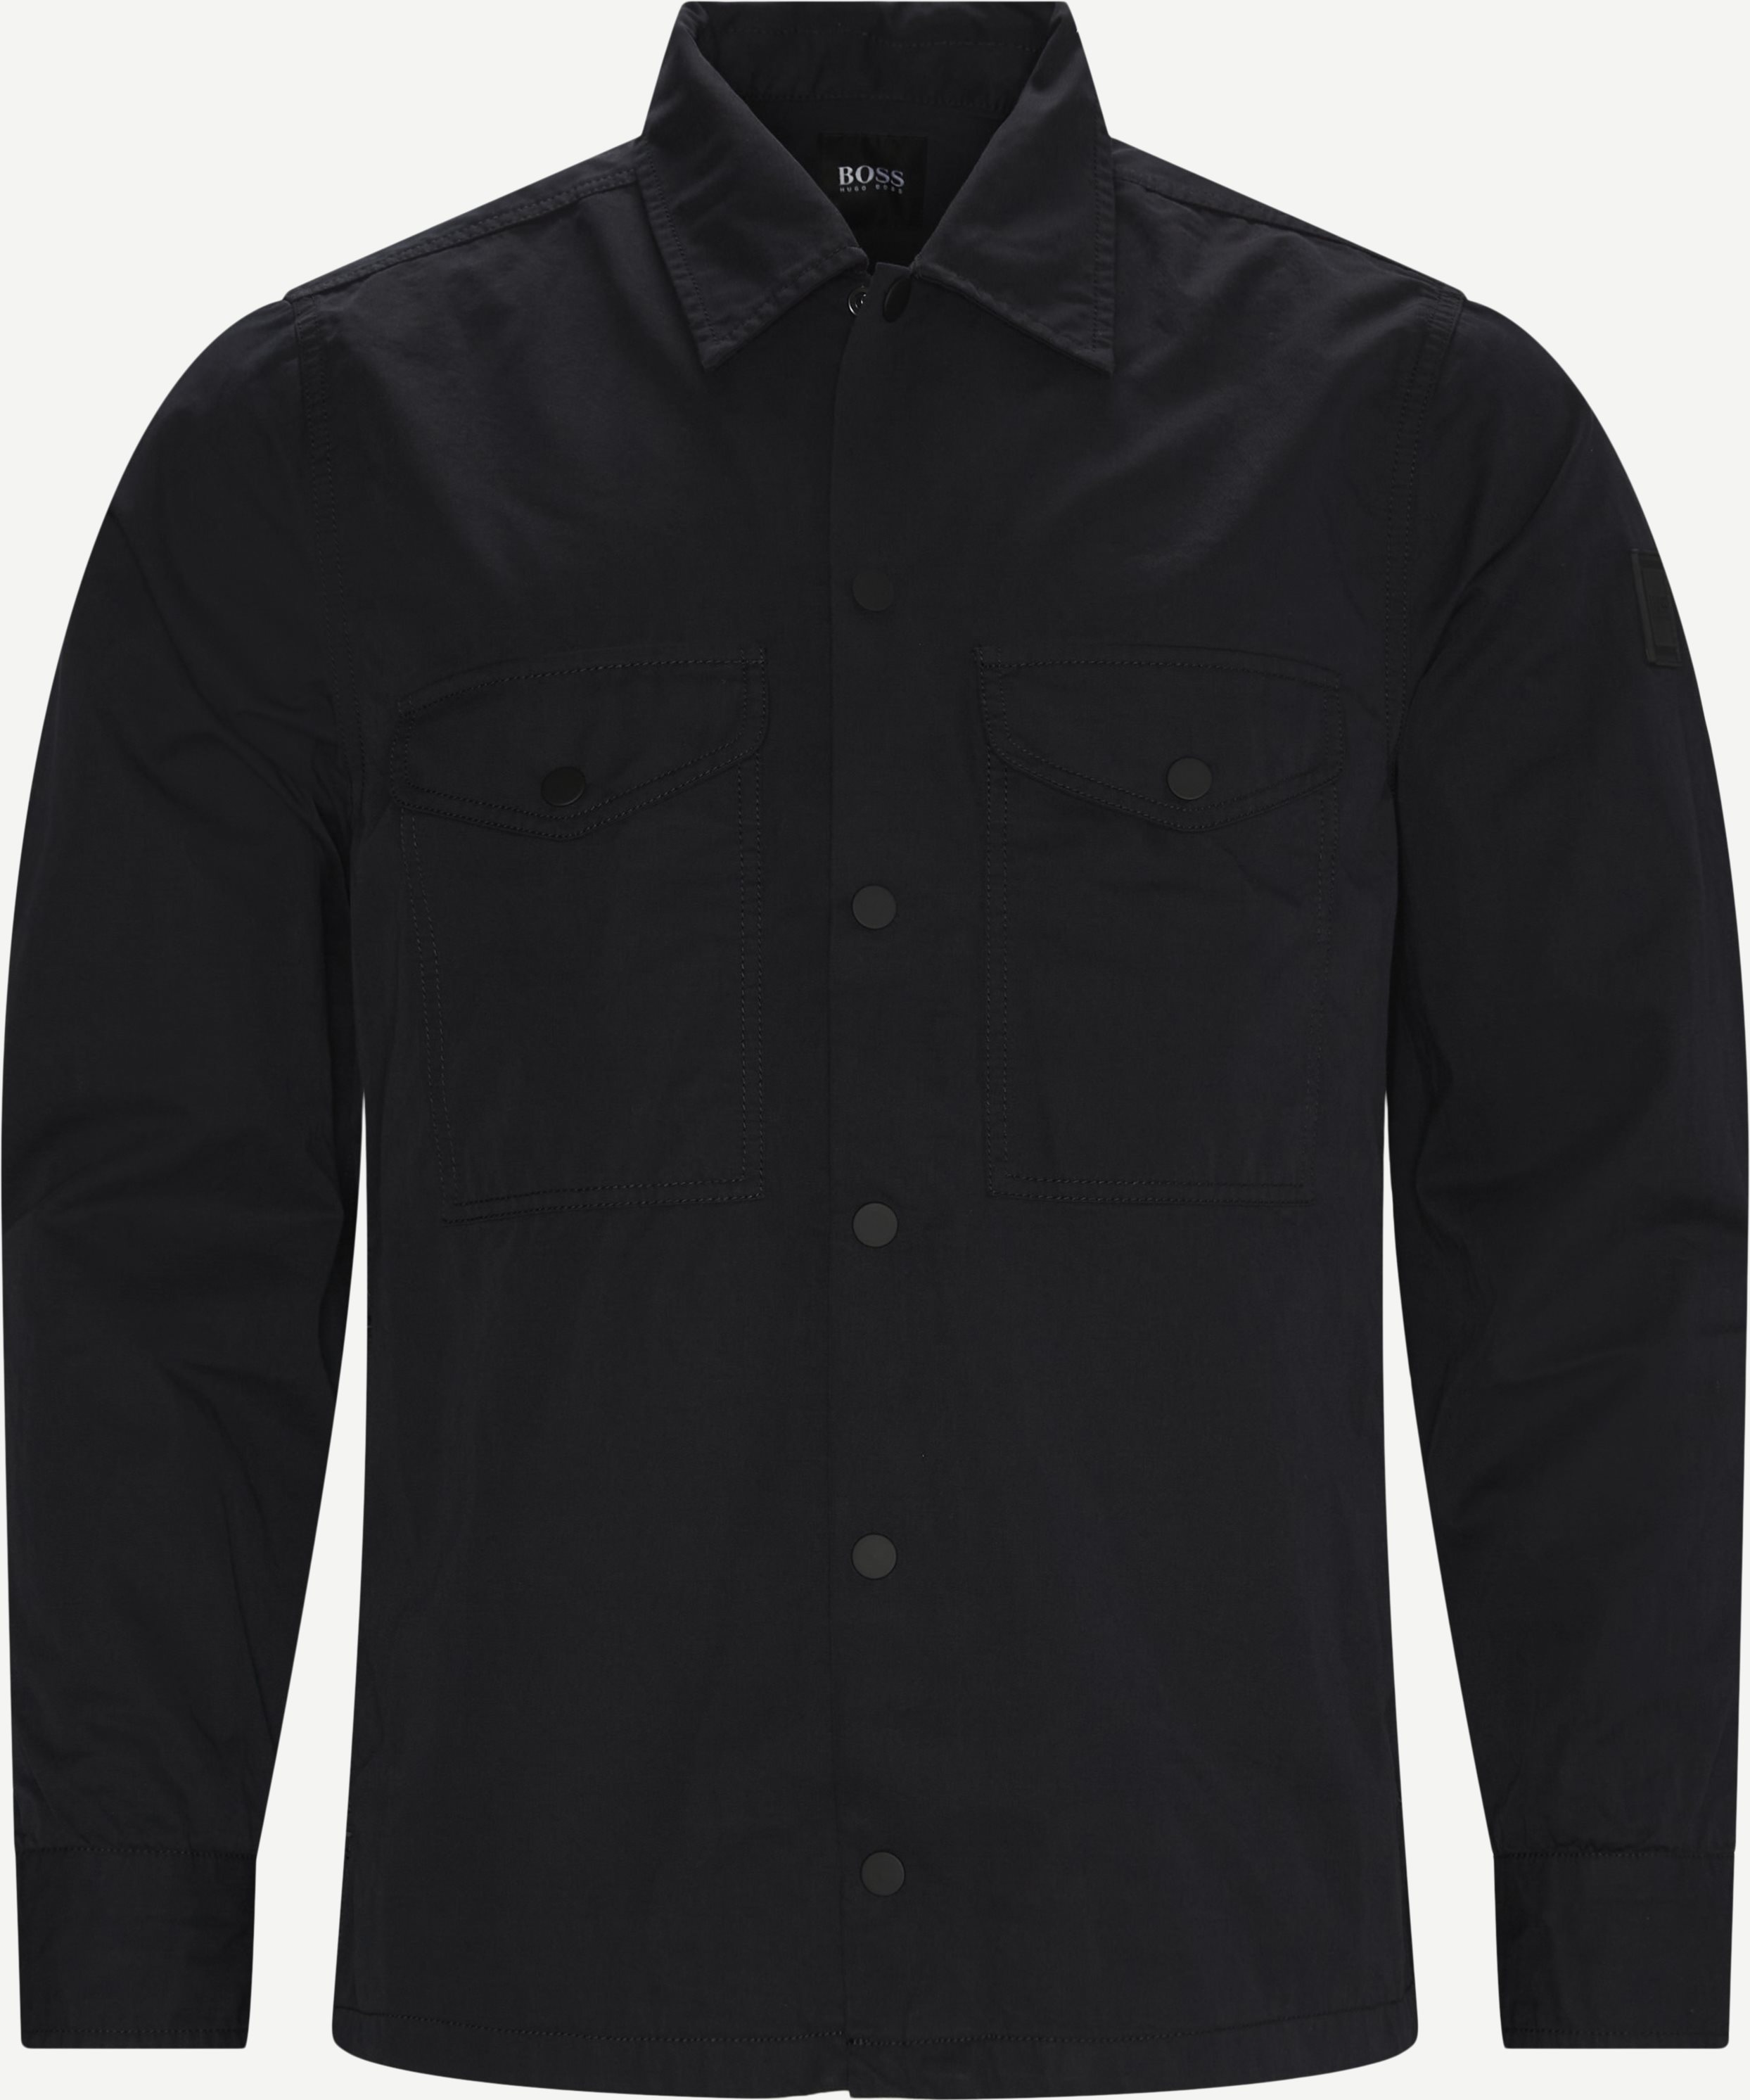 Lovel Shirt - Skjortor - Regular - Svart